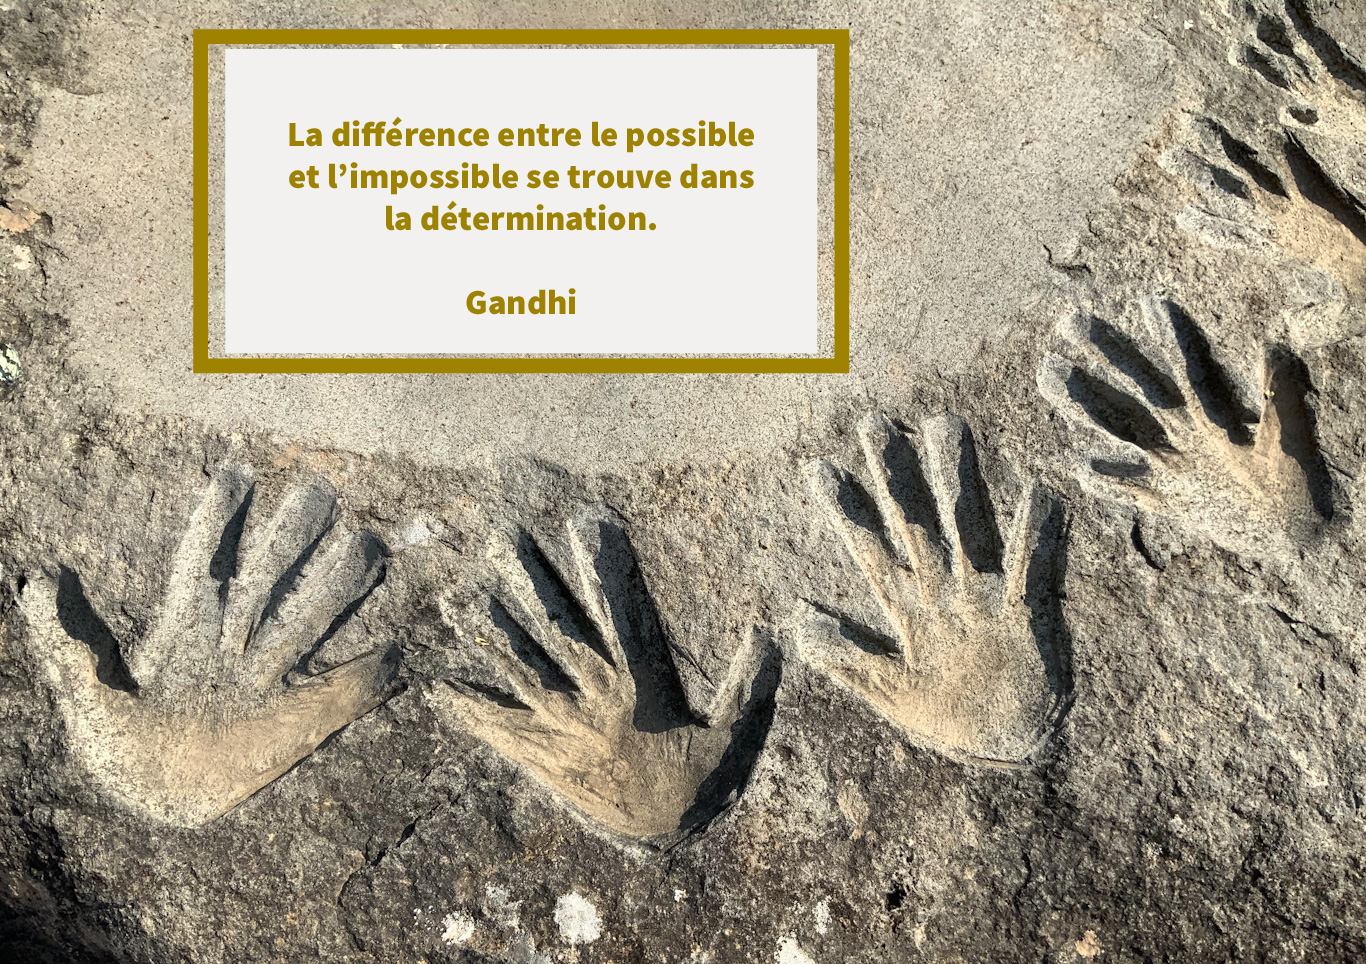 Citation de Gandhi sur une photo d'empreintes de main dans la pierre